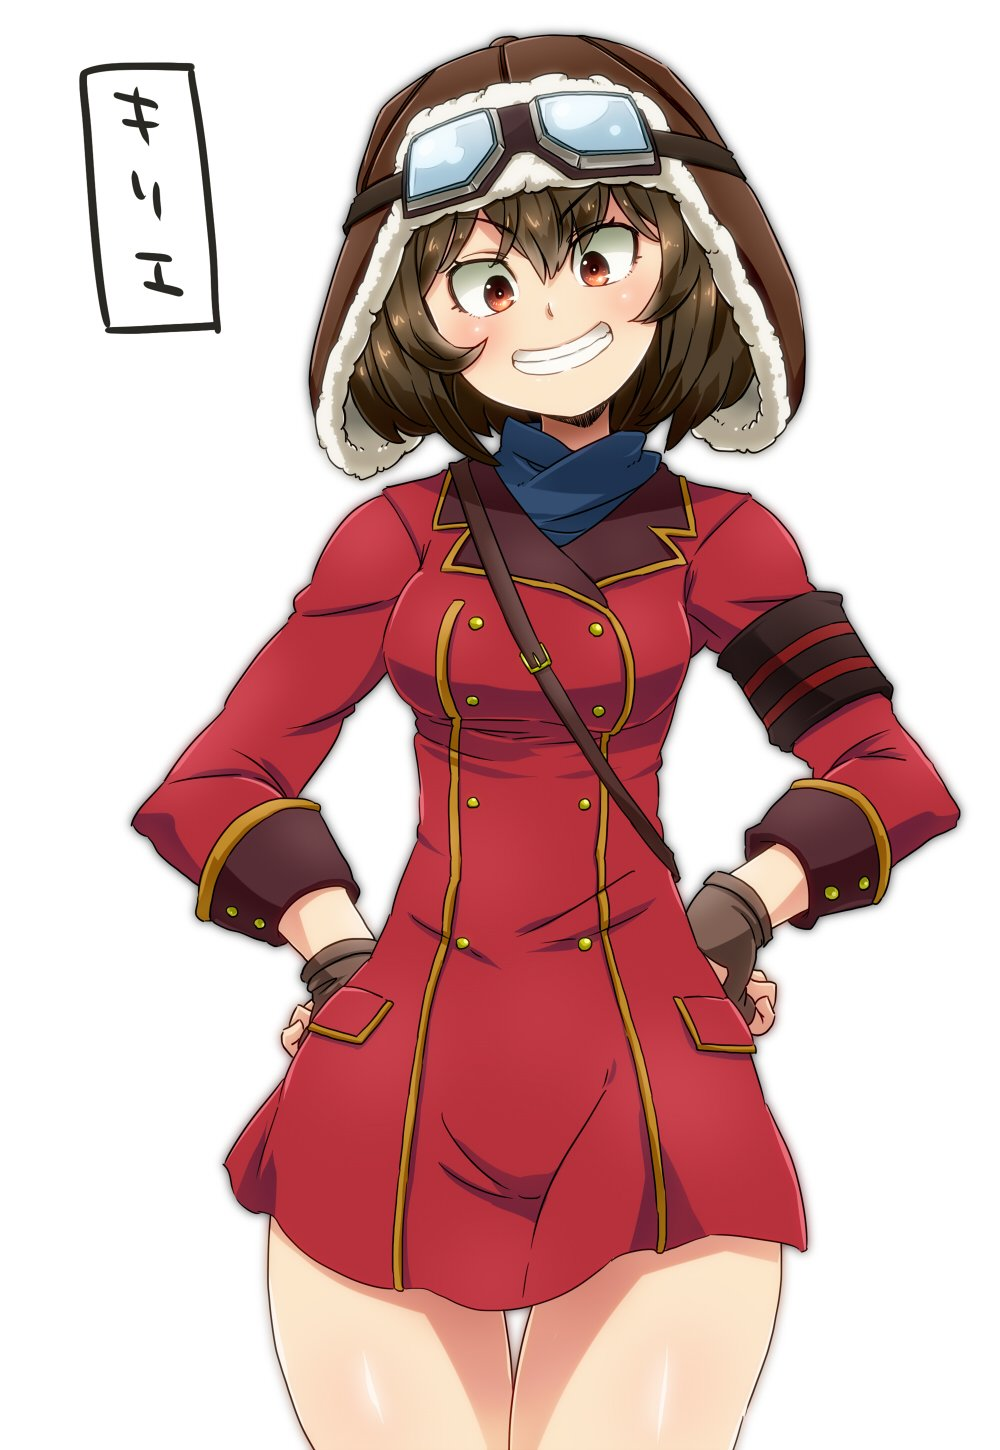 1girl aono3 bangs black_hair brown_eyes brown_gloves coat commentary_request cowboy_shot eyebrows_visible_through_hair fingerless_gloves gloves goggles goggles_on_headwear grin hands_on_hips hat highres kirie_(kouya_no_kotobuki_hikoutai) kouya_no_kotobuki_hikoutai long_sleeves looking_at_viewer red_coat short_hair shoulder_strap simple_background smile solo standing thigh_gap translated v-shaped_eyebrows white_background